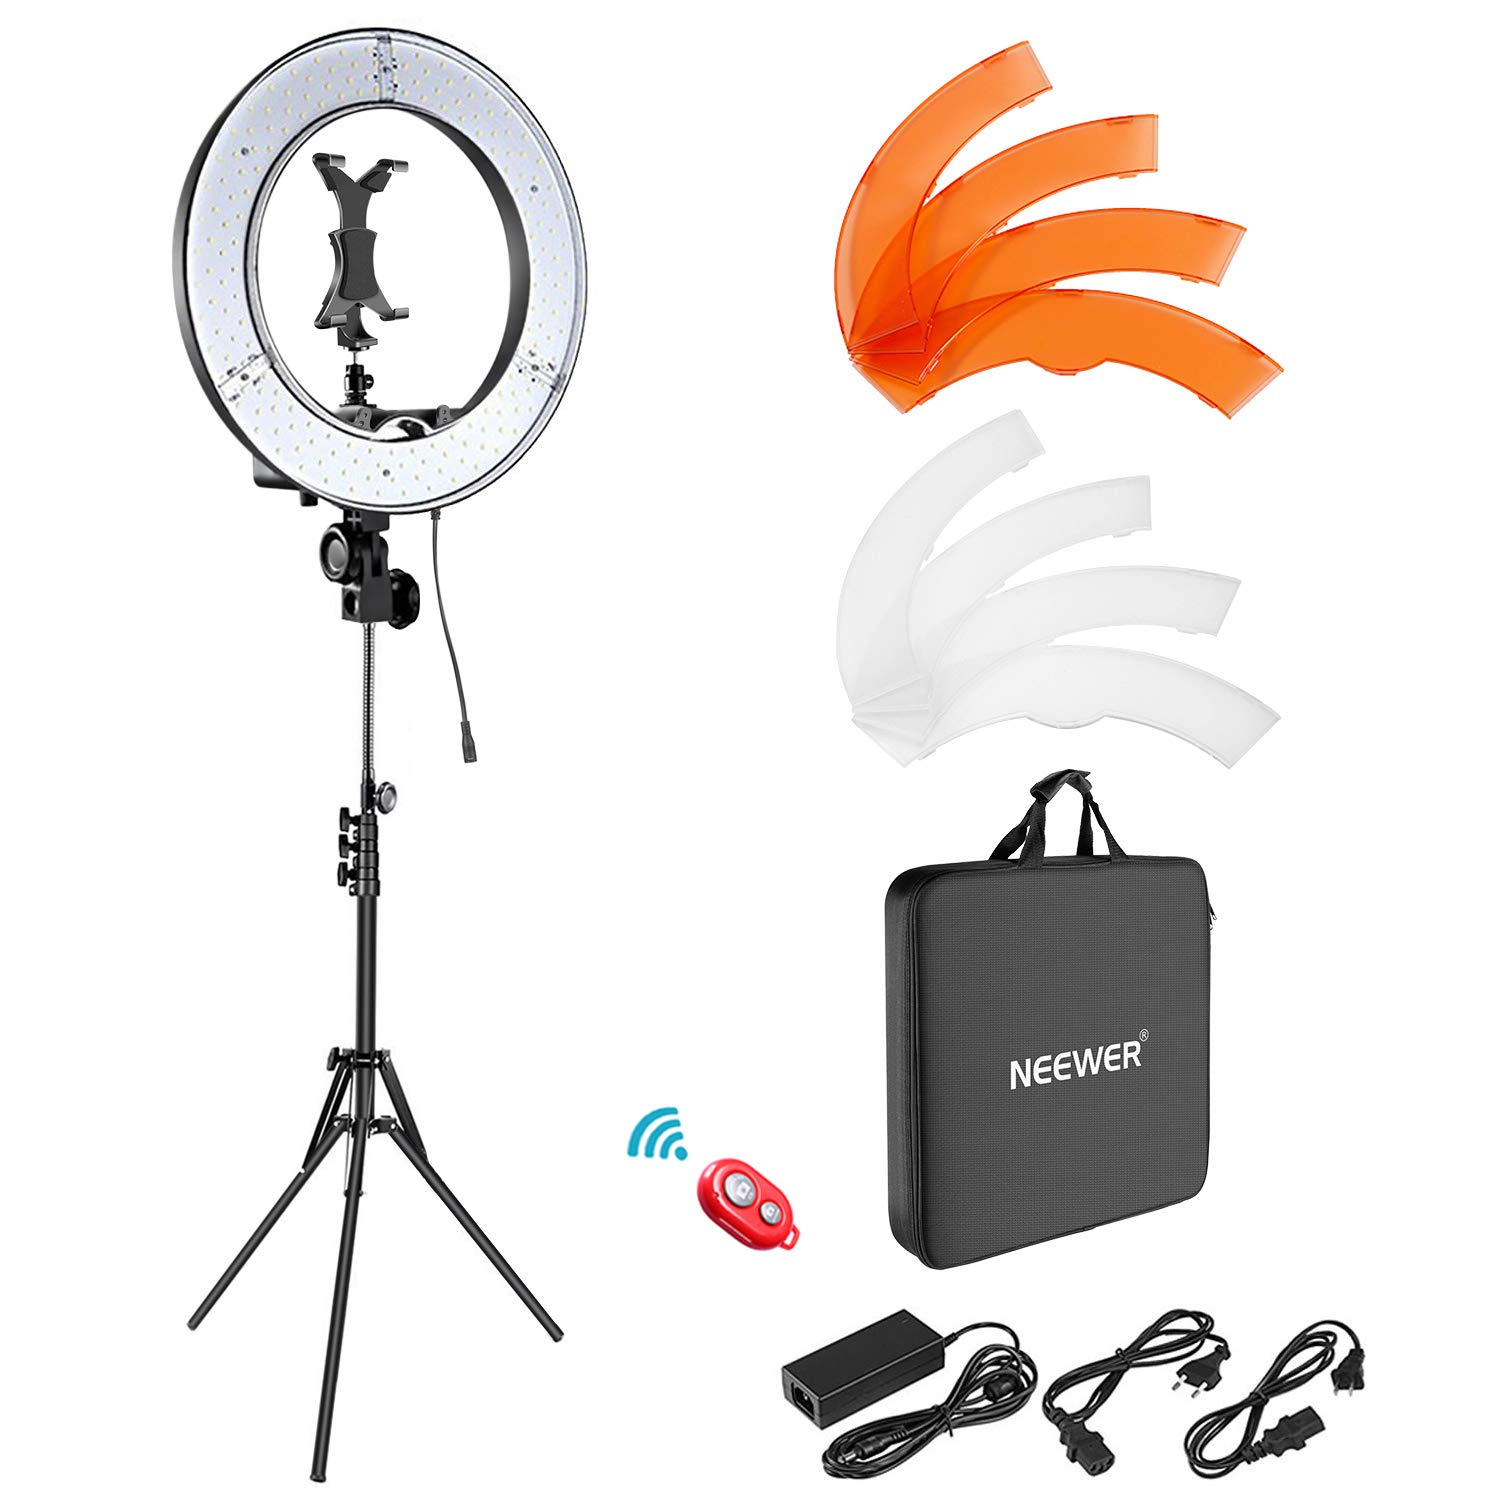 Neewer Ring Light Kit: 18 inches Outer 55W 5500K Dimmable LED Ring Light with Light Stand/iPad Clamp/Soft Tube/Color Filter/Carrying Bag for YouTube Video, Selfie, Make-up, Hair Salon, etc